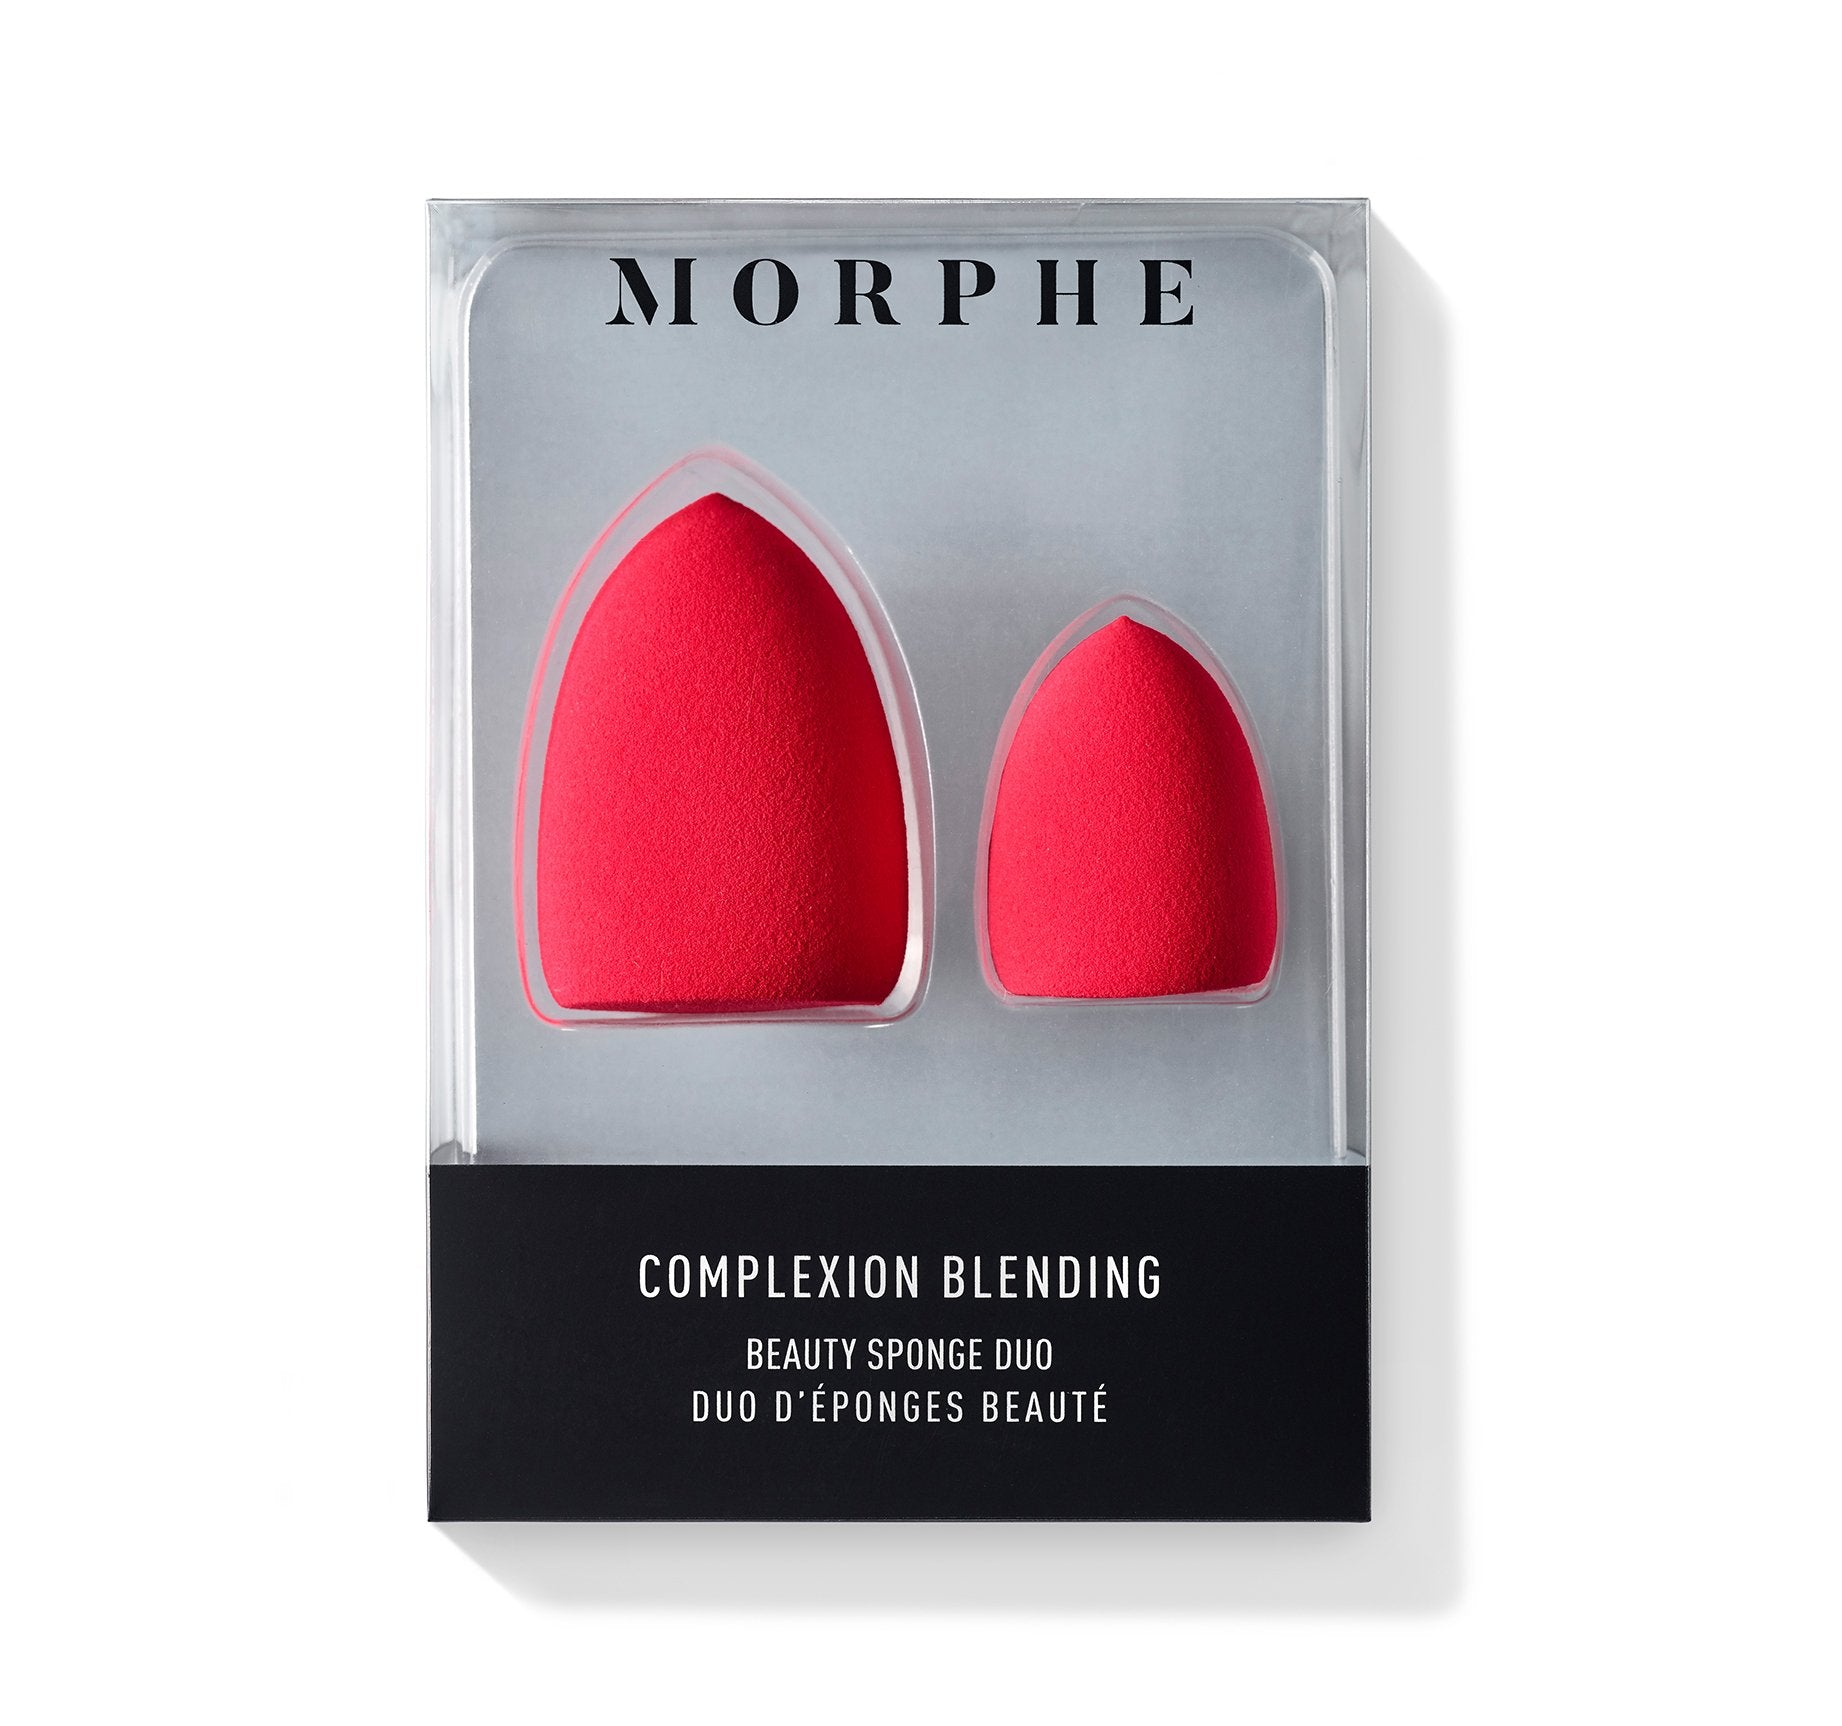 COMPLEXION BLENDING BEAUTY SPONGE DUO, view larger image